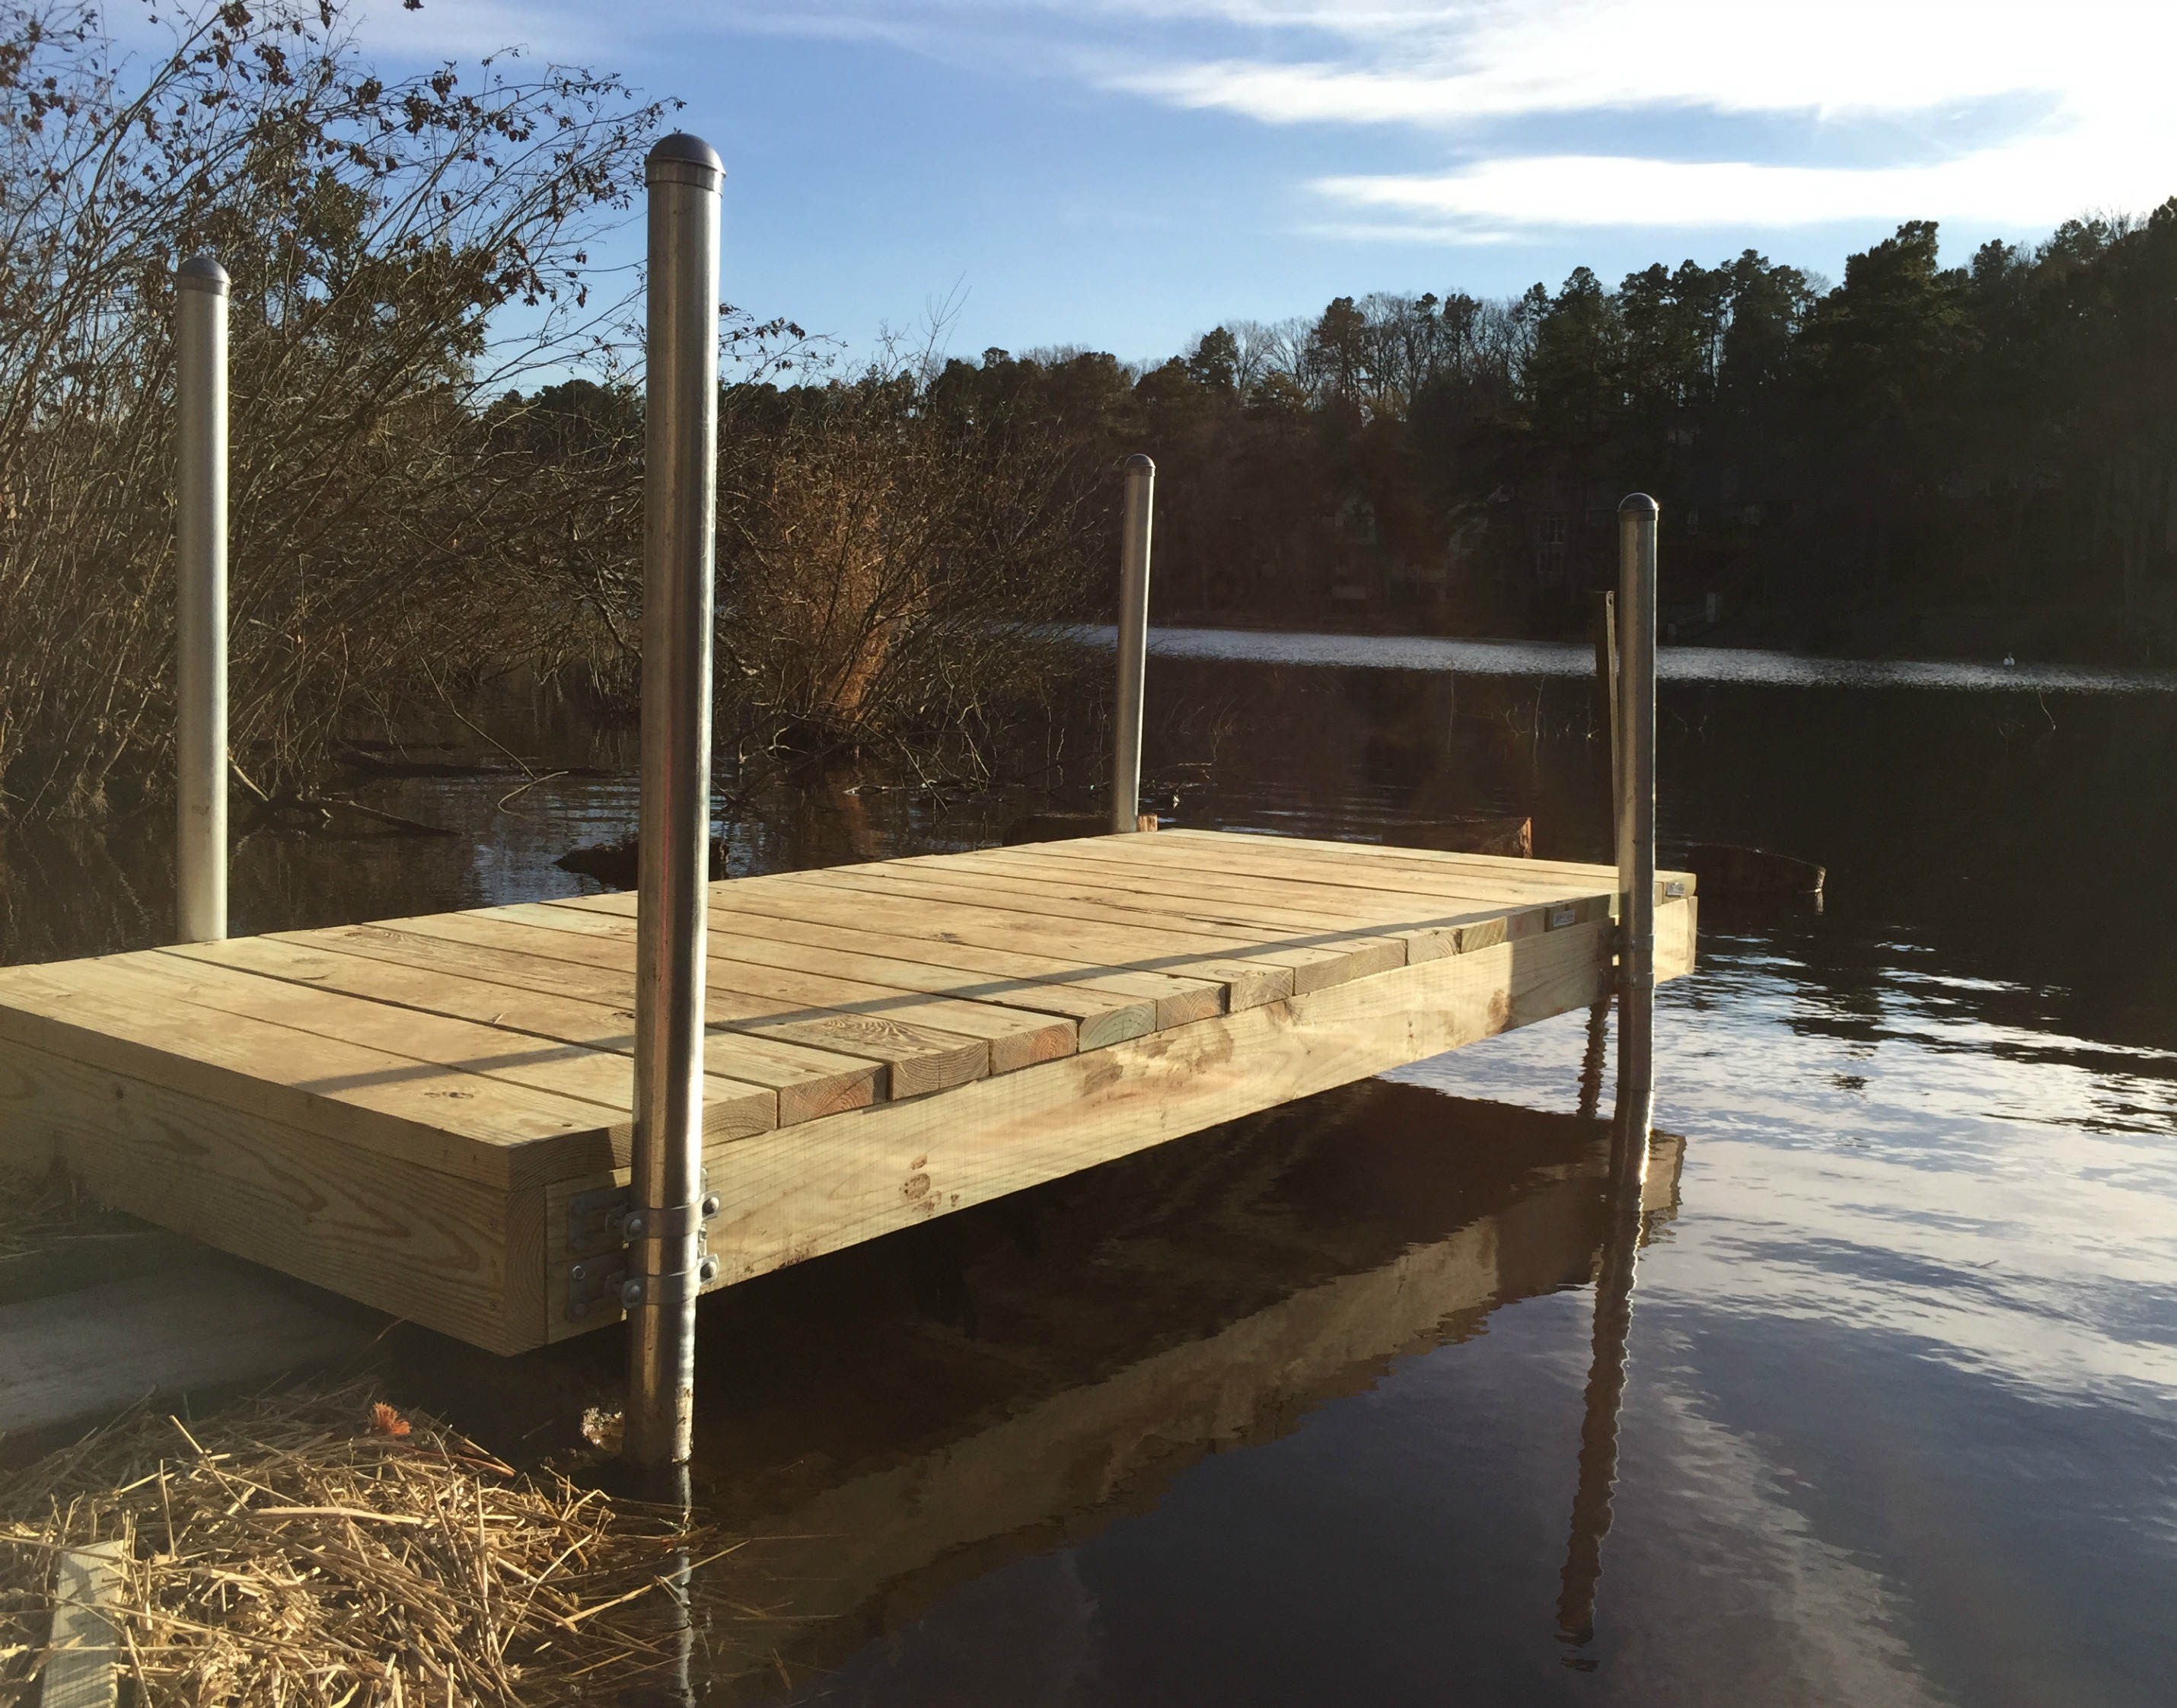 Build a DIY Boat Dock - Bare Feet on the Dashboard